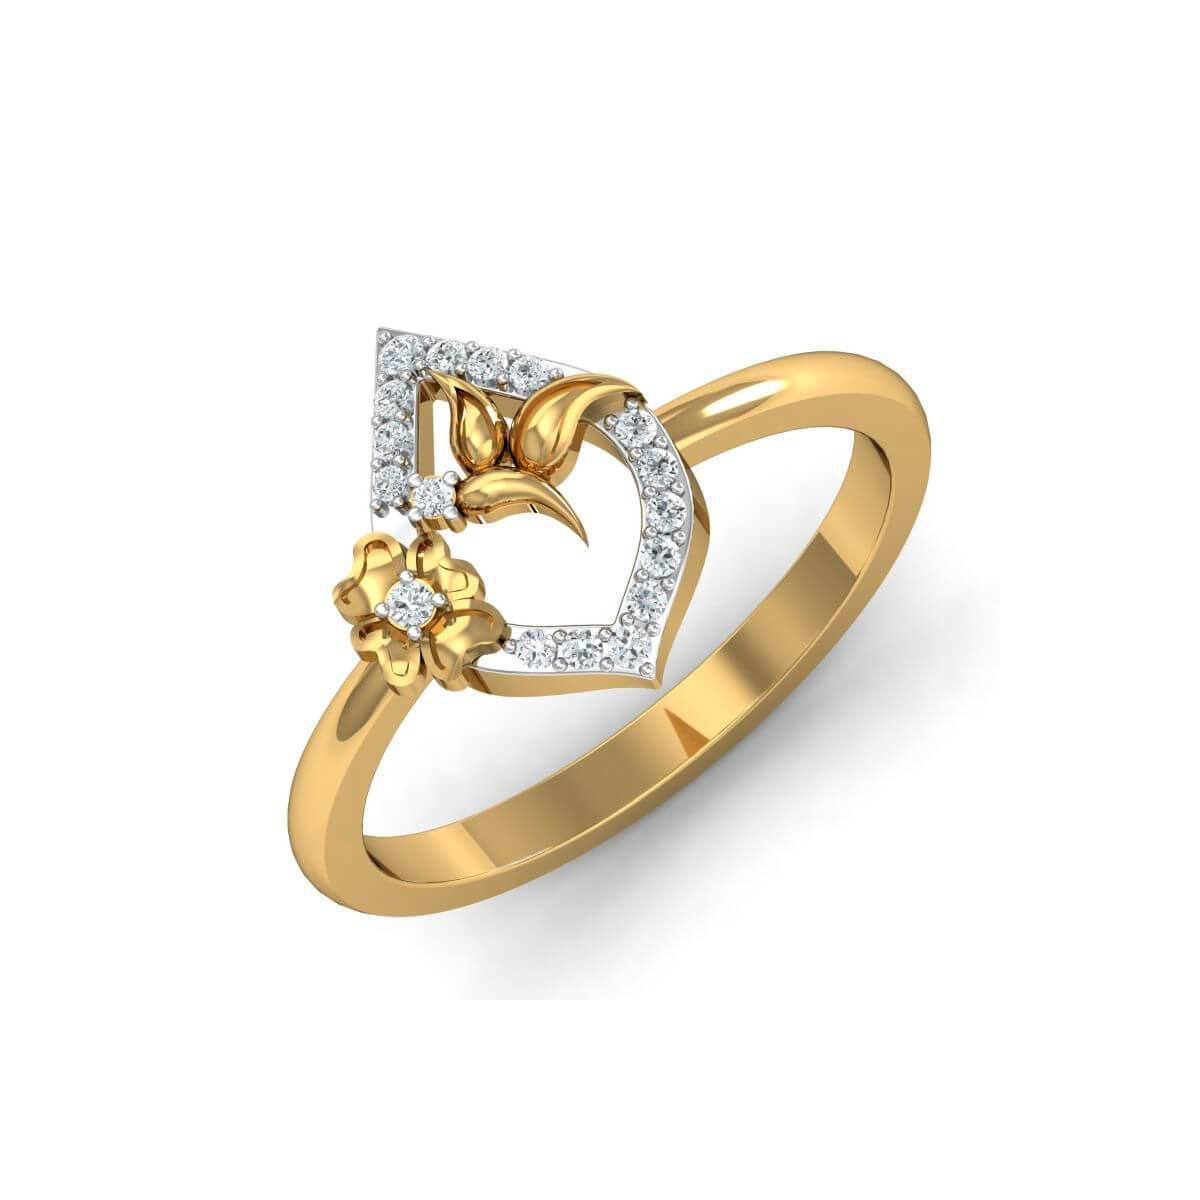 Diamoire Jewels 18kt Yellow Gold Pave 0.09ct Diamond Infinity Ring With Sapphire - UK G 1/4 - US 3 1/2 - EU 45 3/4 cQ6J2ggE